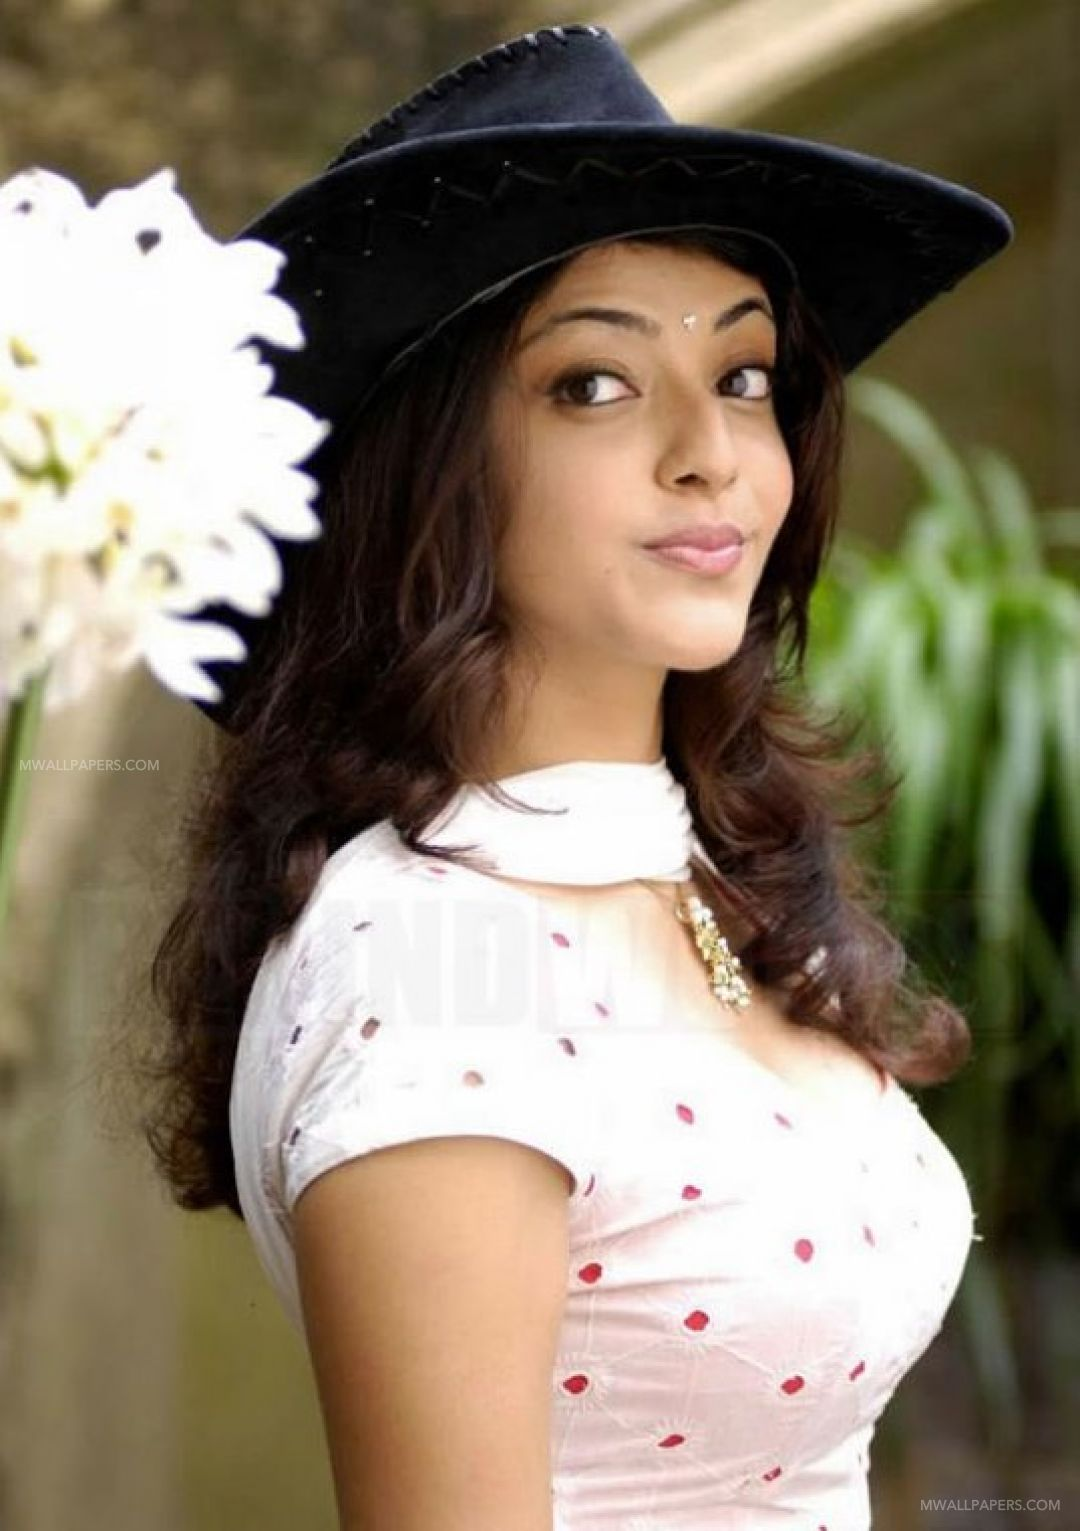 Kajal Agarwal HD Wallpapers (Desktop Background / Android / iPhone) (1080p, 4k) (35665) - Kajal Agarwal